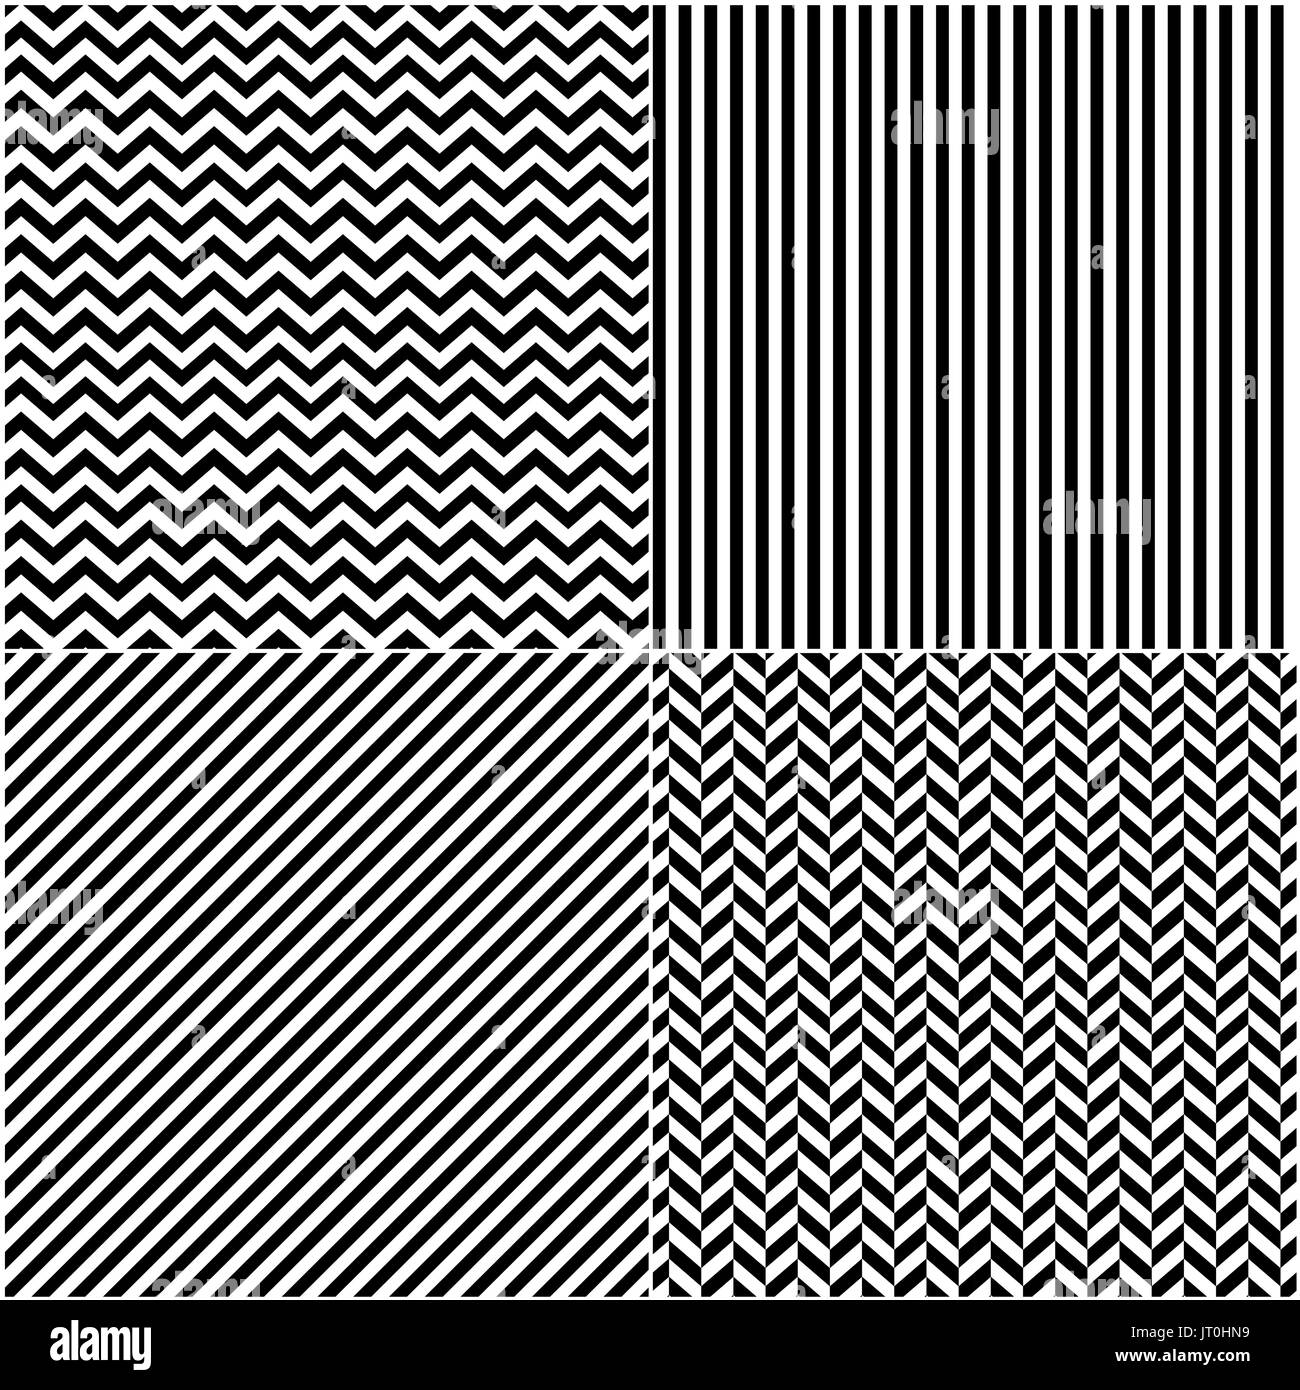 four classic black and white lines seamless patterns collection diagonal chevron zigzag and vertical straight lines seamless monochrome pattern mo